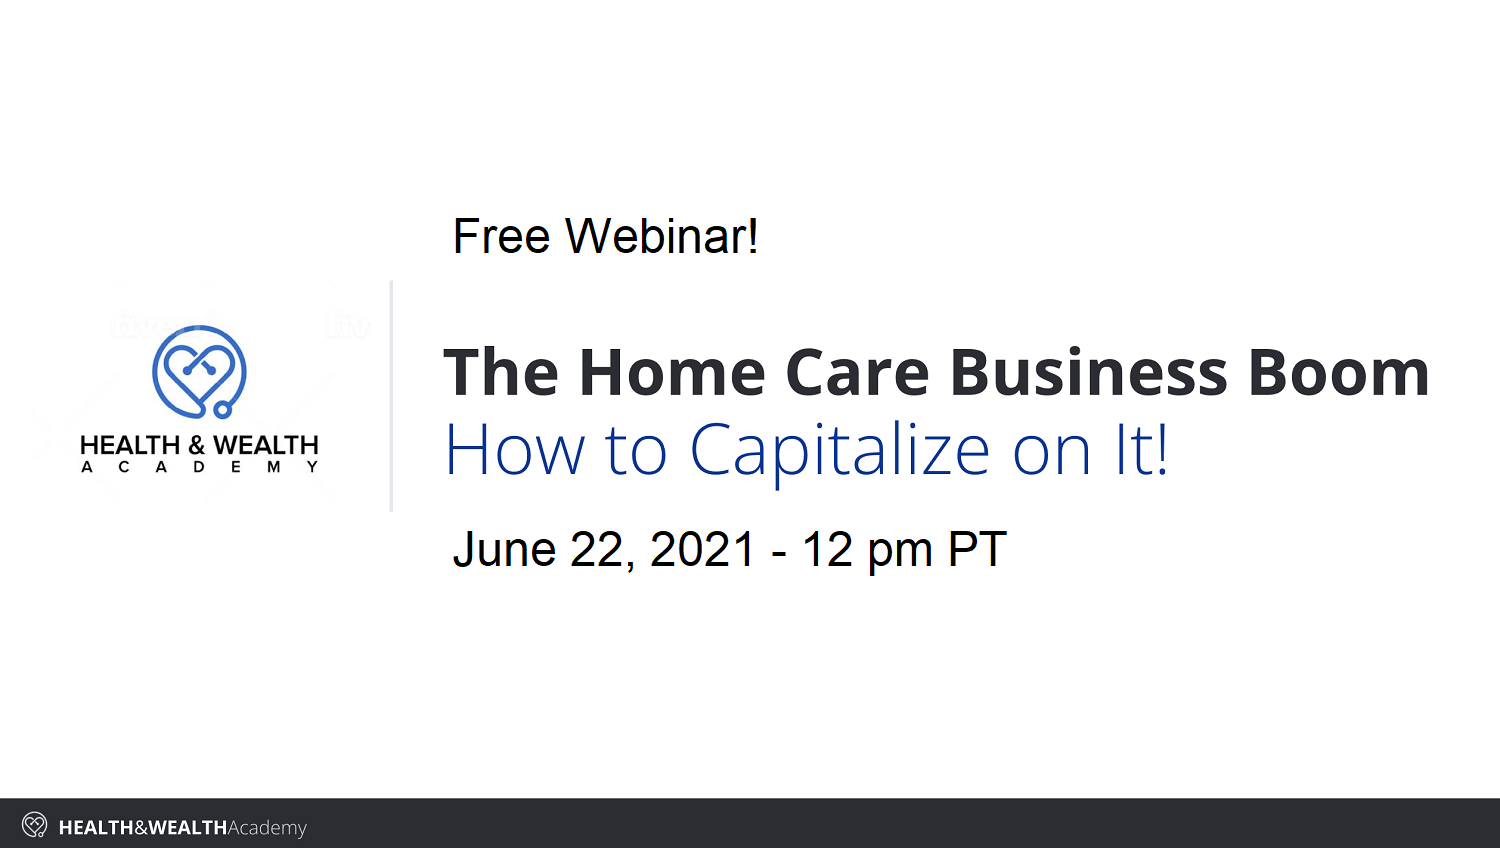 DaveTheNurse Webinar June 22: The Home Care Business Boom - How to Capitalize on It!